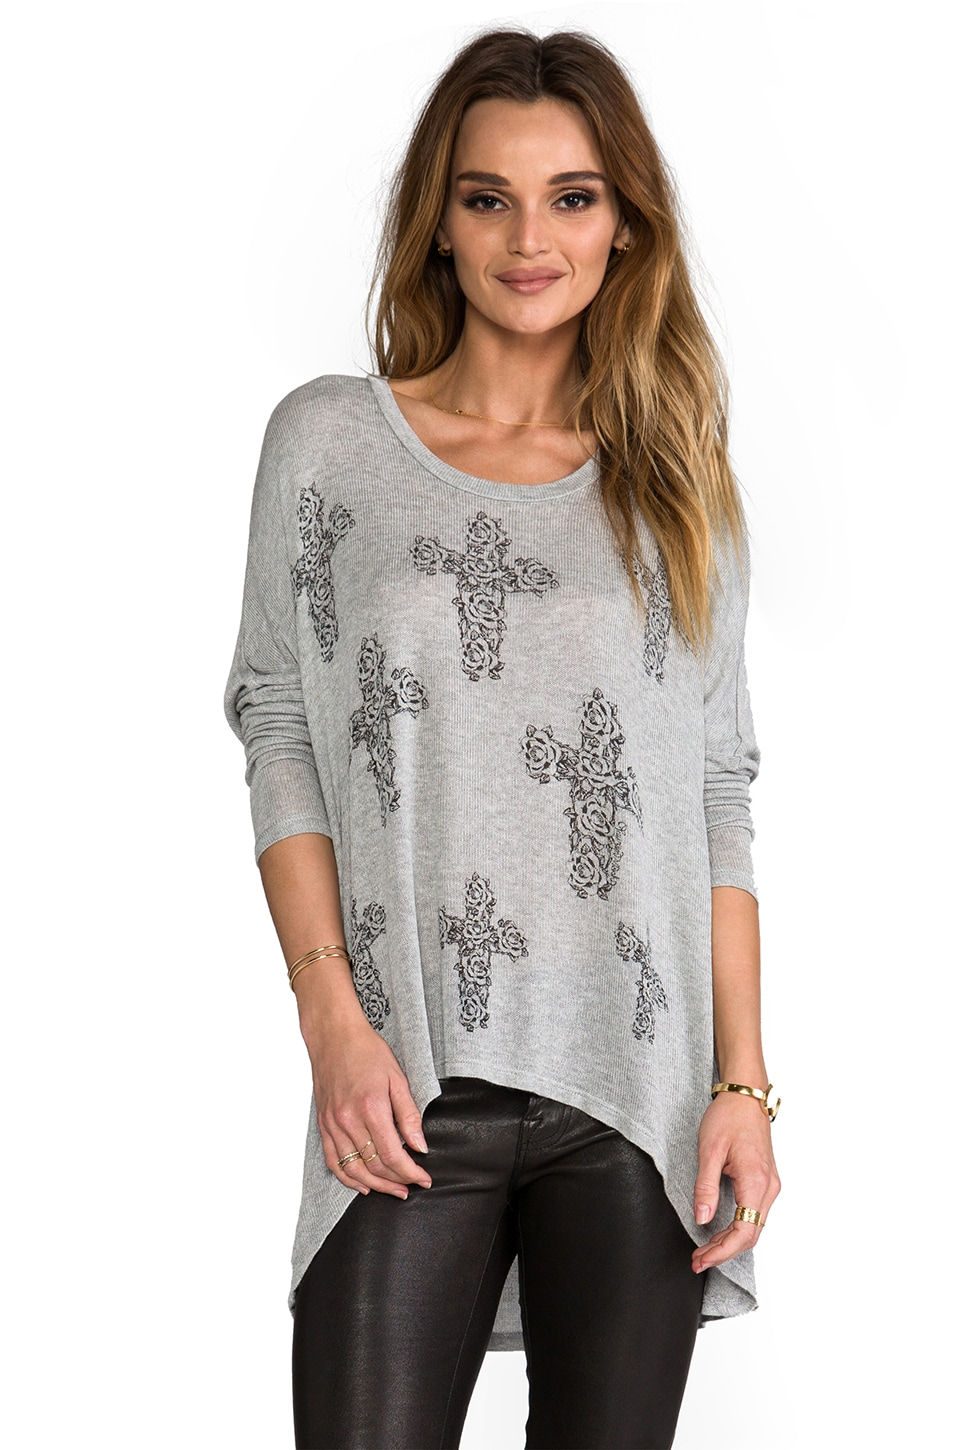 Lauren Moshi ReaganMini Rose Cross Sweater in Heather Grey